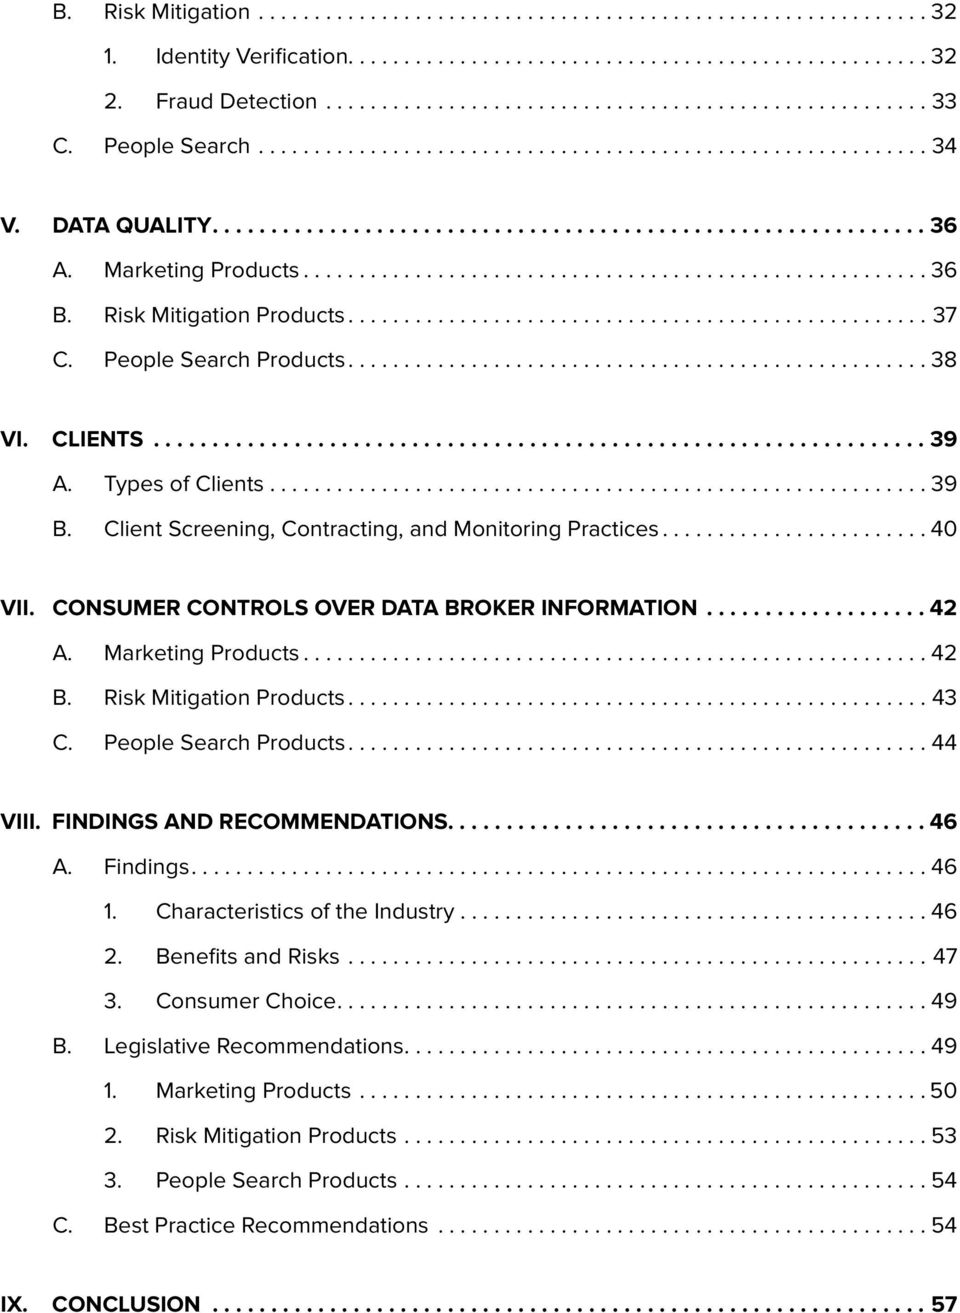 CONSUMER CONTROLS OVER DATA BROKER INFORMATION... 42 A. Marketing Products...42 B. Risk Mitigation Products...43 C. People Search Products...44 VIII. FINDINGS AND RECOMMENDATIONS......................................... 46 A.